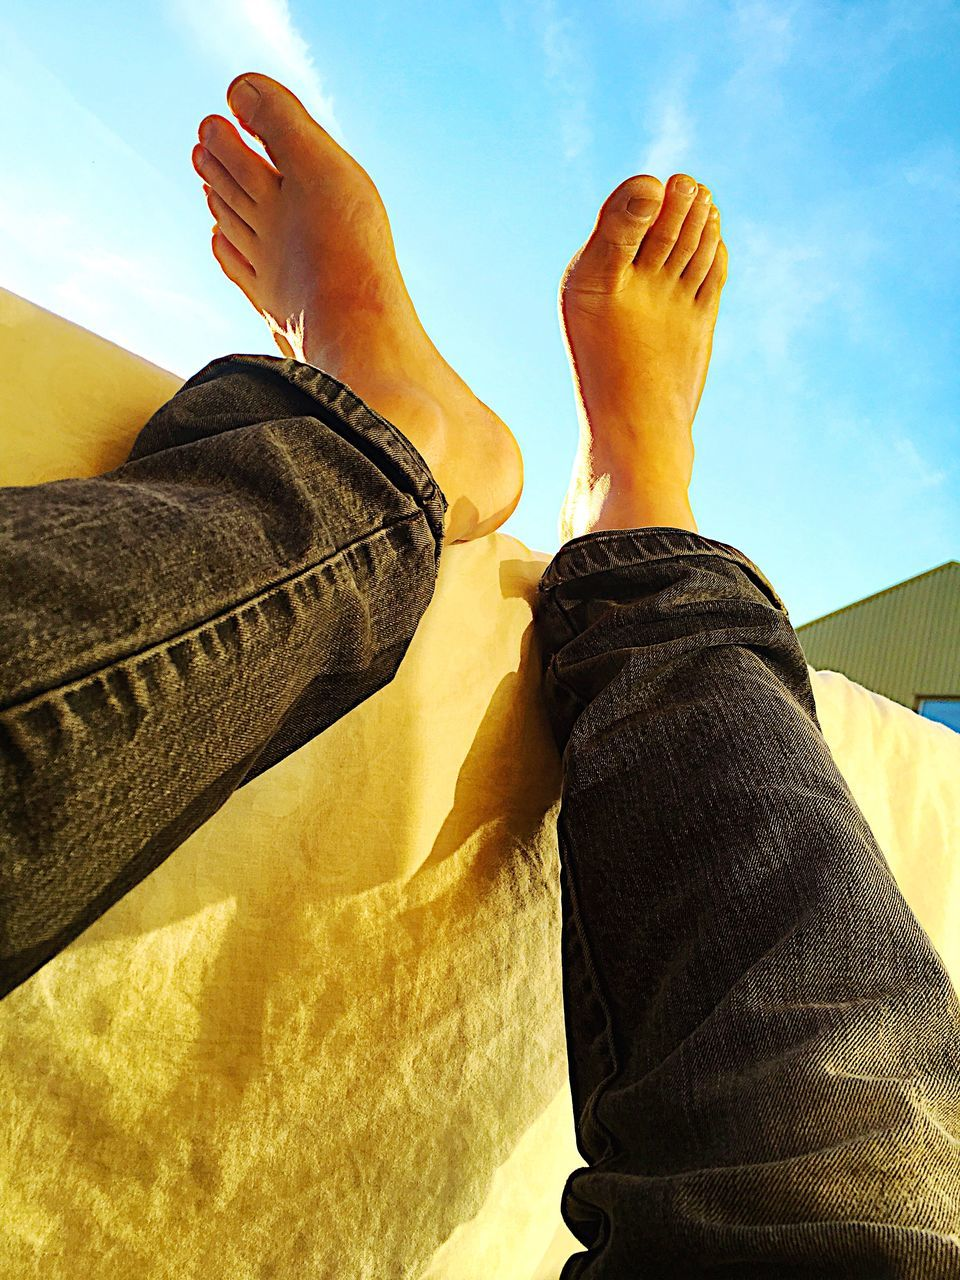 human leg, low section, human foot, personal perspective, one person, real people, human body part, jeans, barefoot, day, sunlight, outdoors, women, lifestyles, men, relaxation, sky, close-up, people